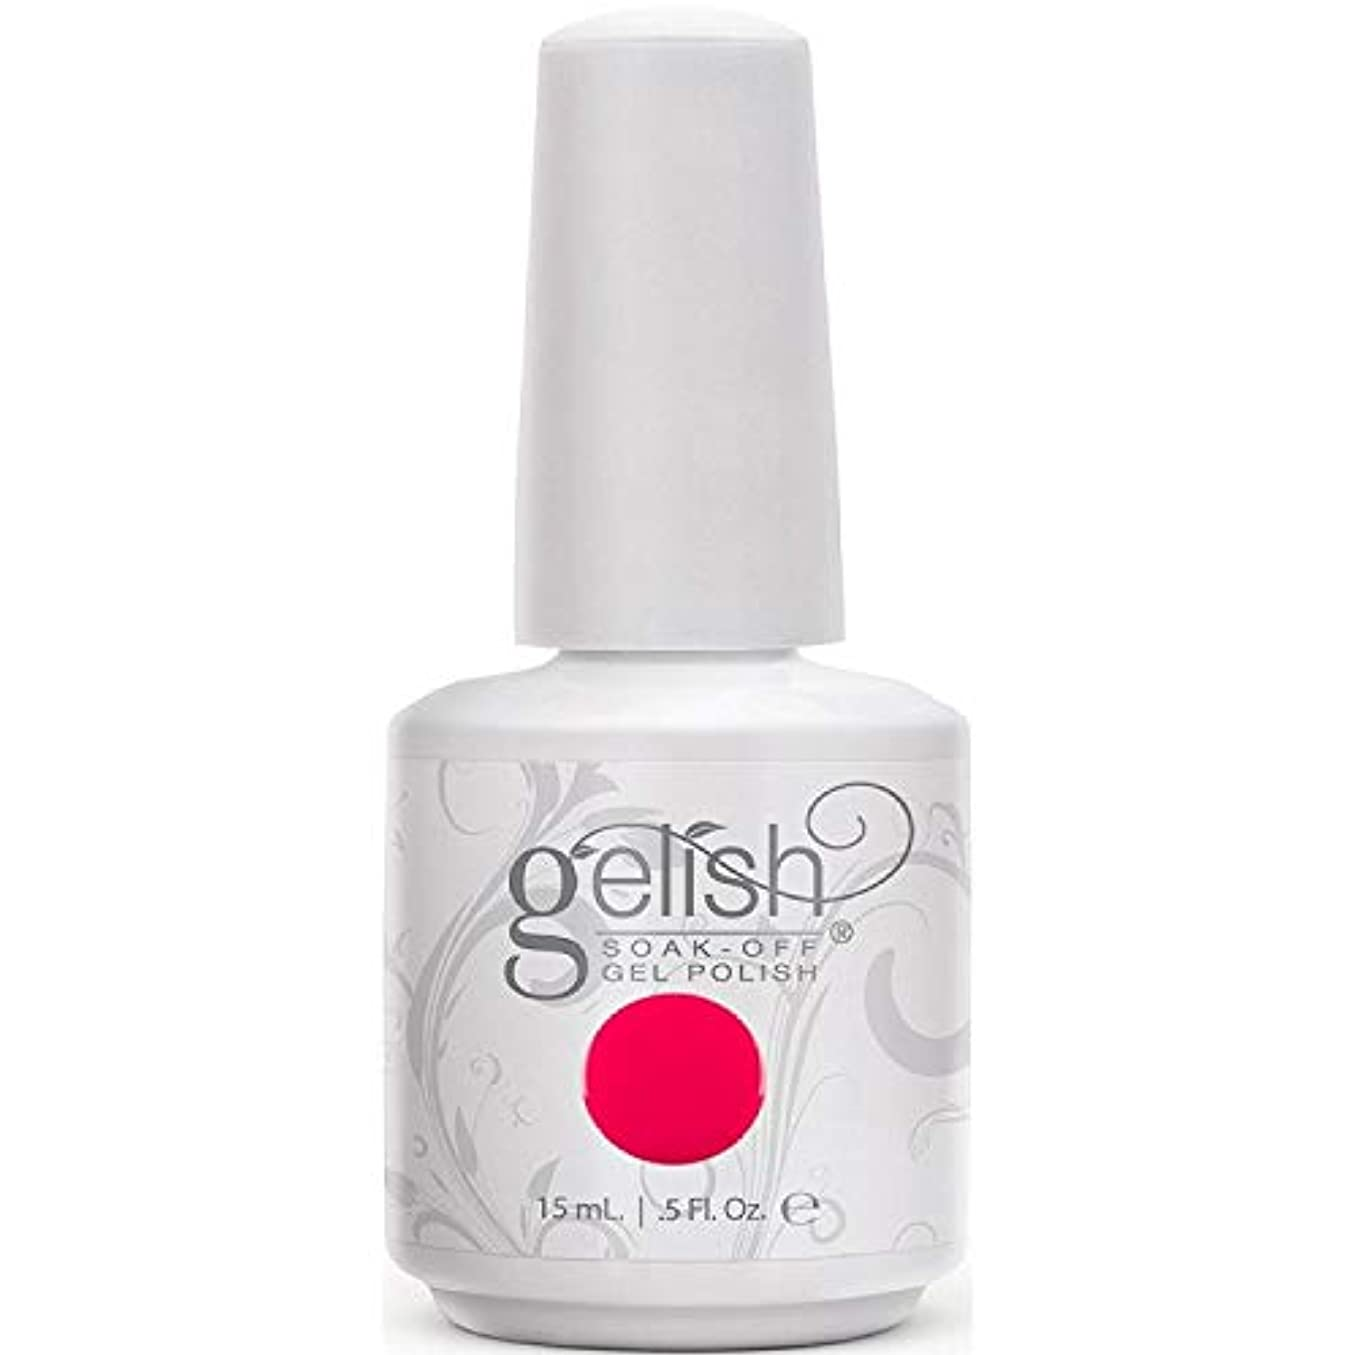 Harmony Gelish Gel Polish - Pacific Sunset - 0.5oz/15ml